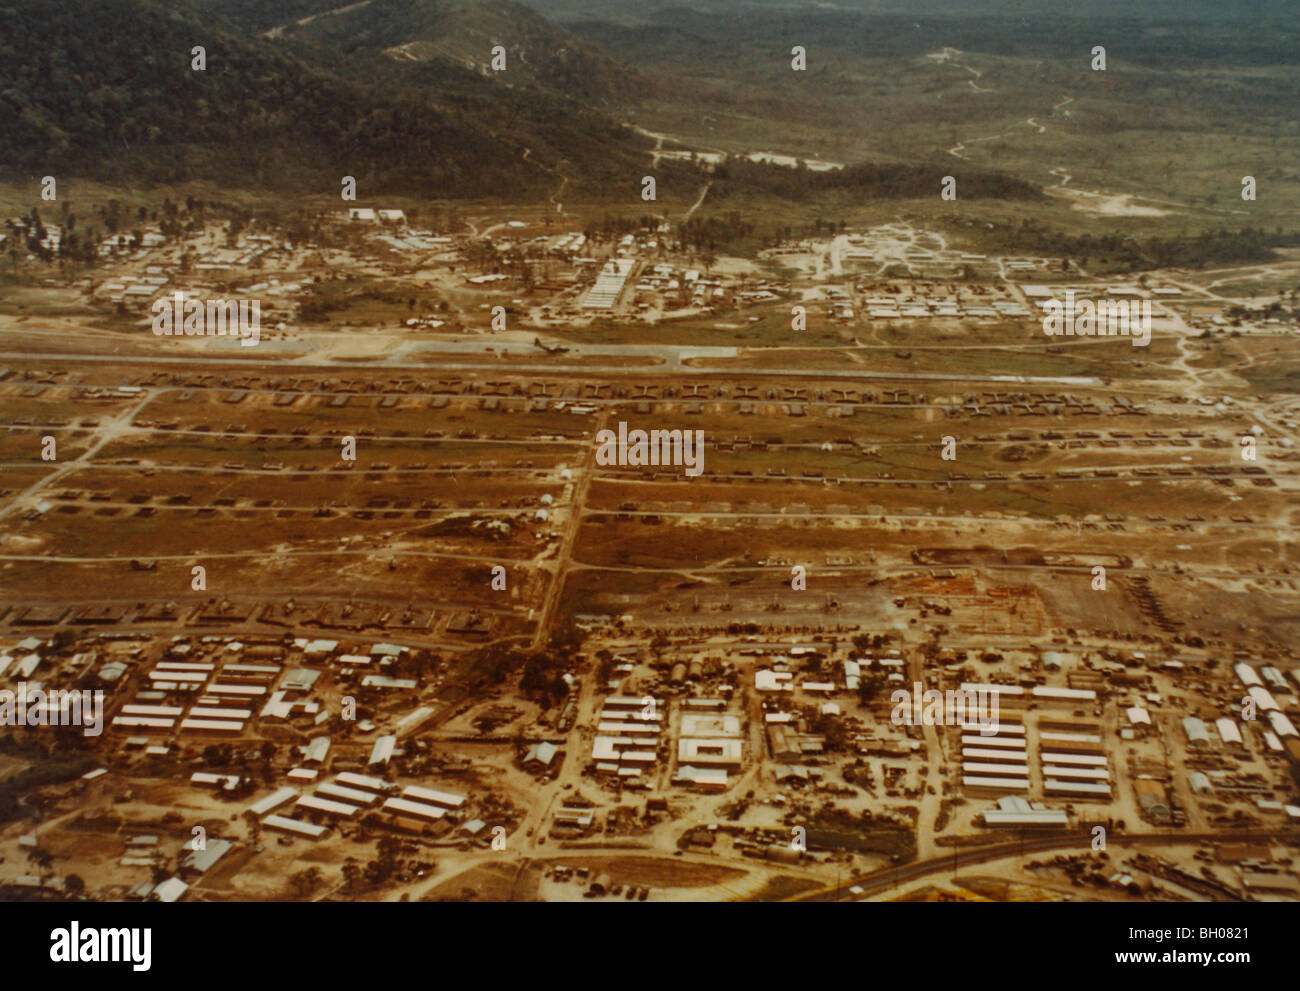 Aerial view of the heliport of the 1st Cavalry Division at An Khe, looking north. - Stock Image